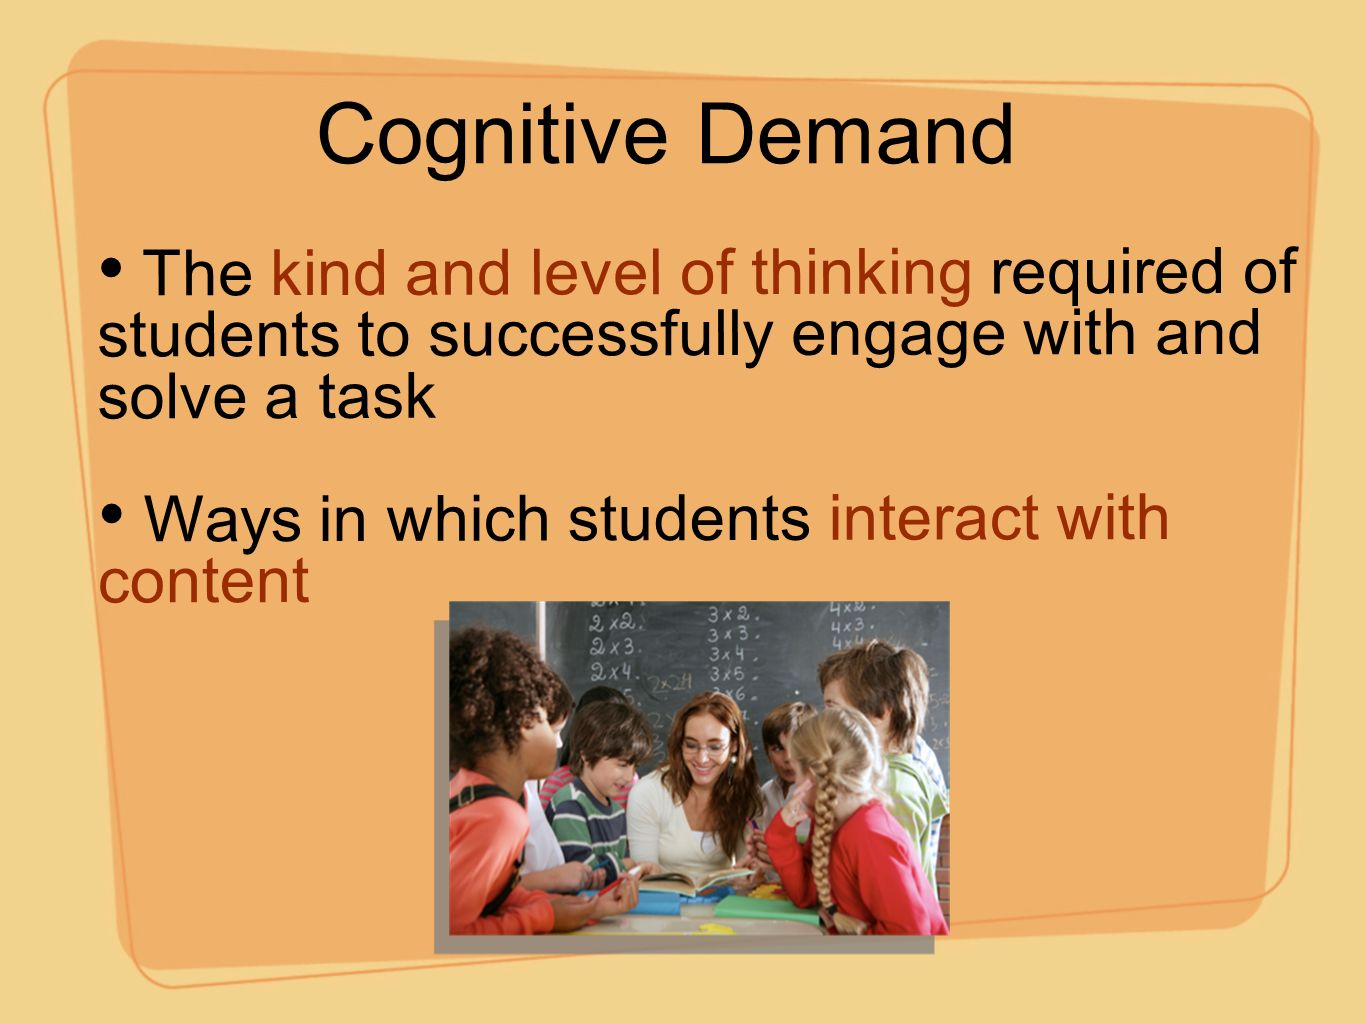 Cognitive Demand The kind and level of thinking required of students to successfully engage with and solve a task Ways in which students interact with content